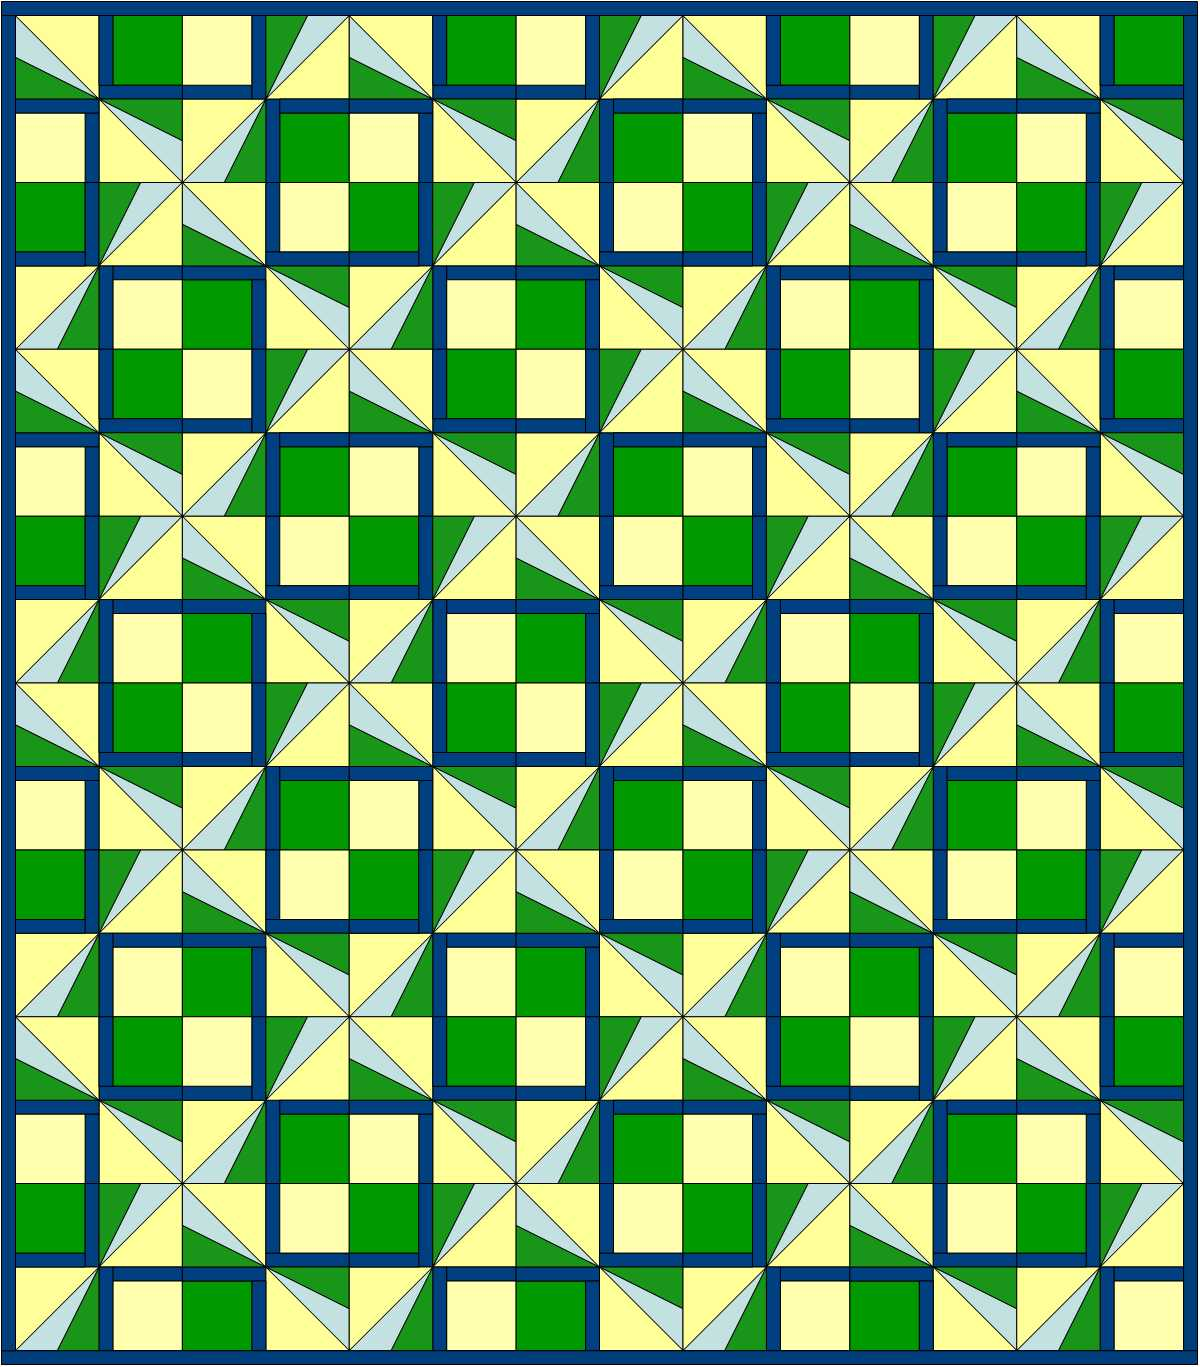 Pinwheel Plaid quilt design